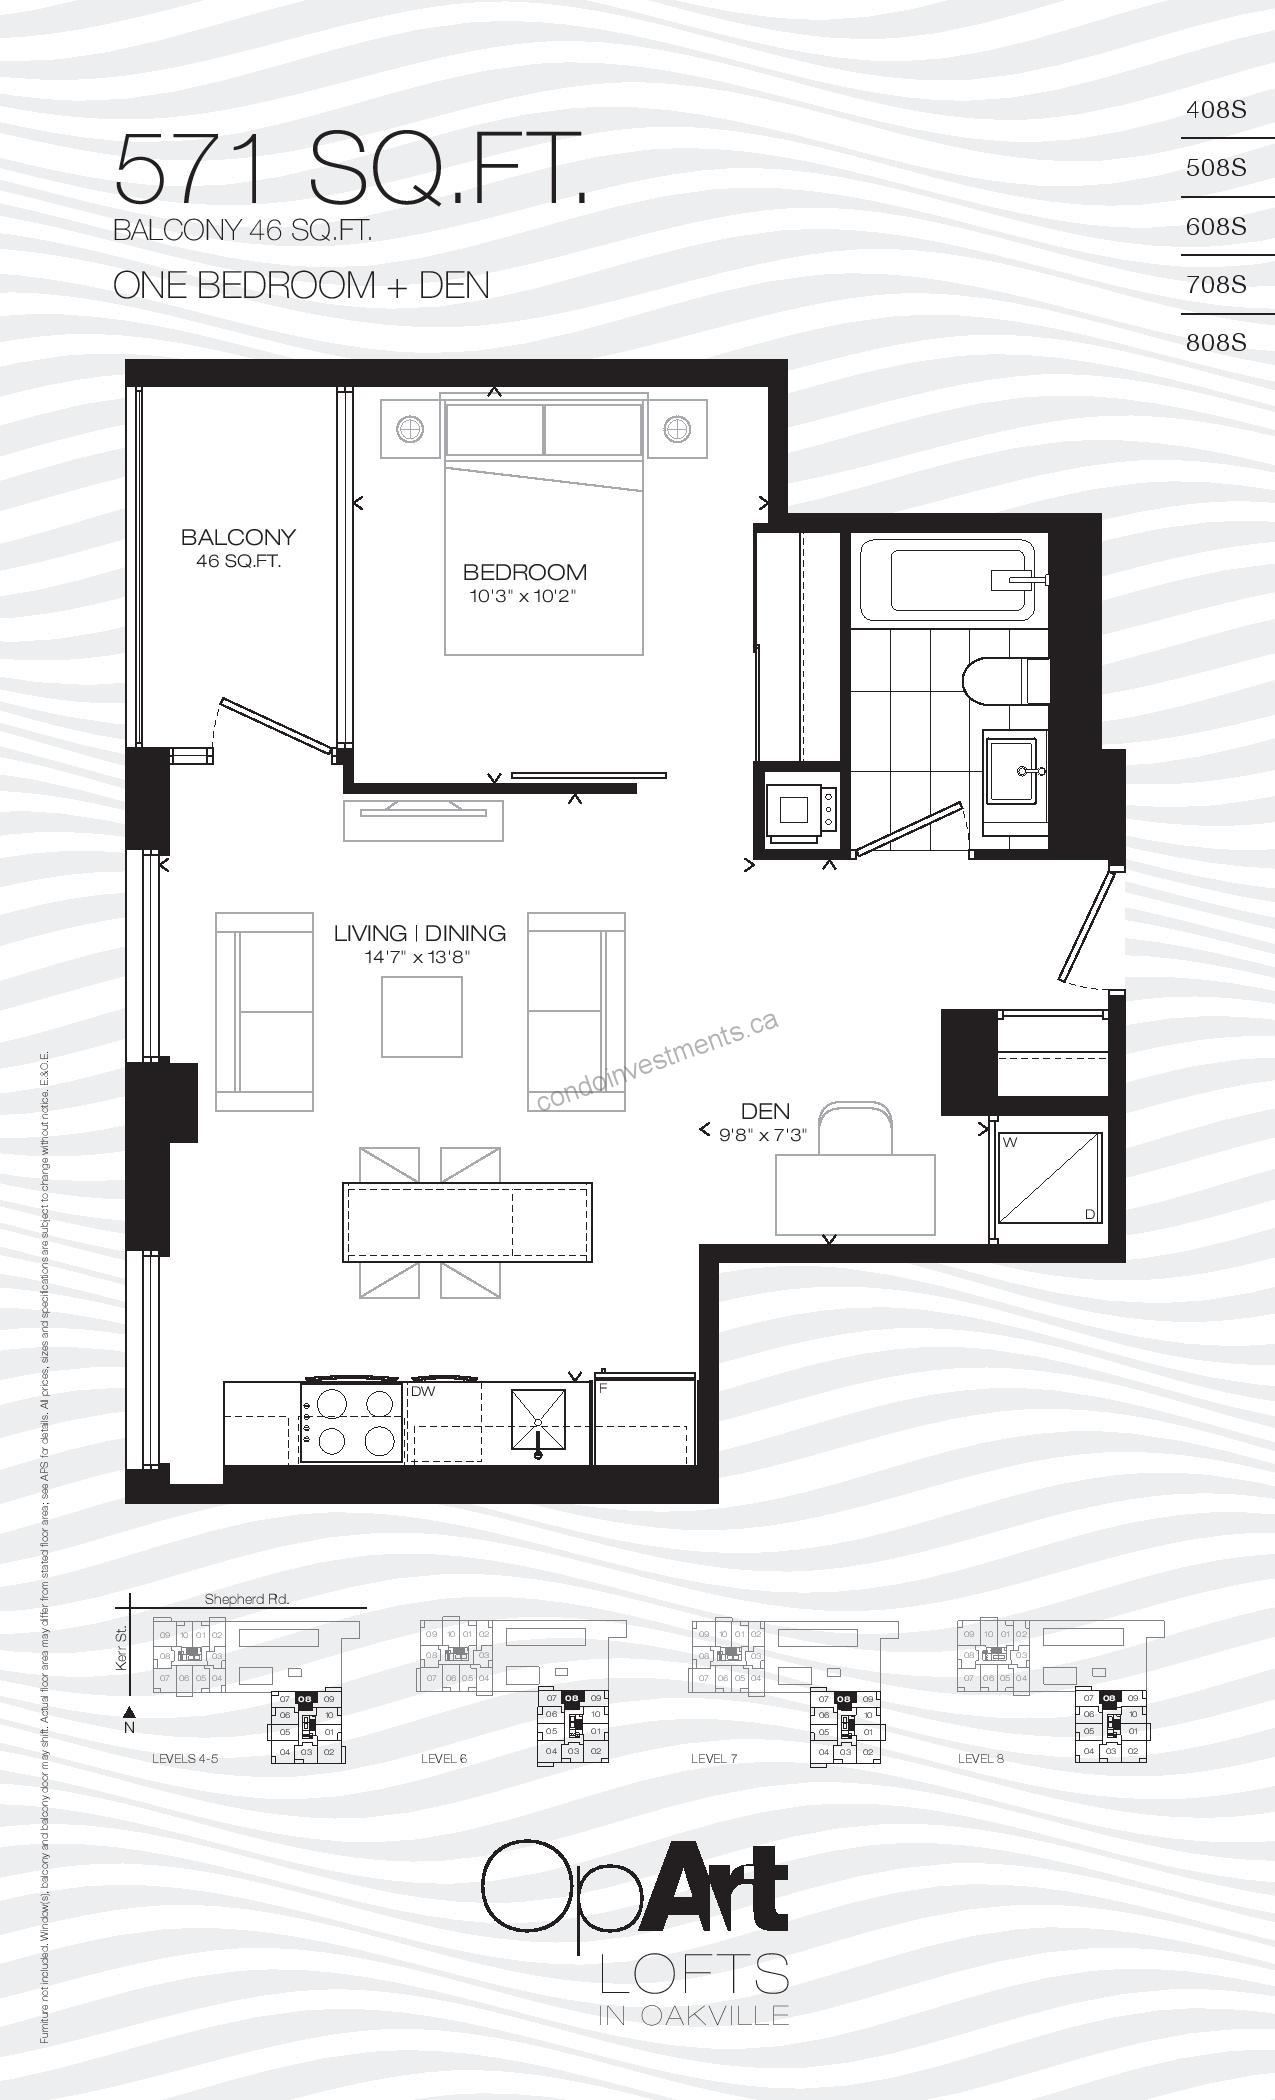 Opart Lofts In Oakville Canada Condo Investments